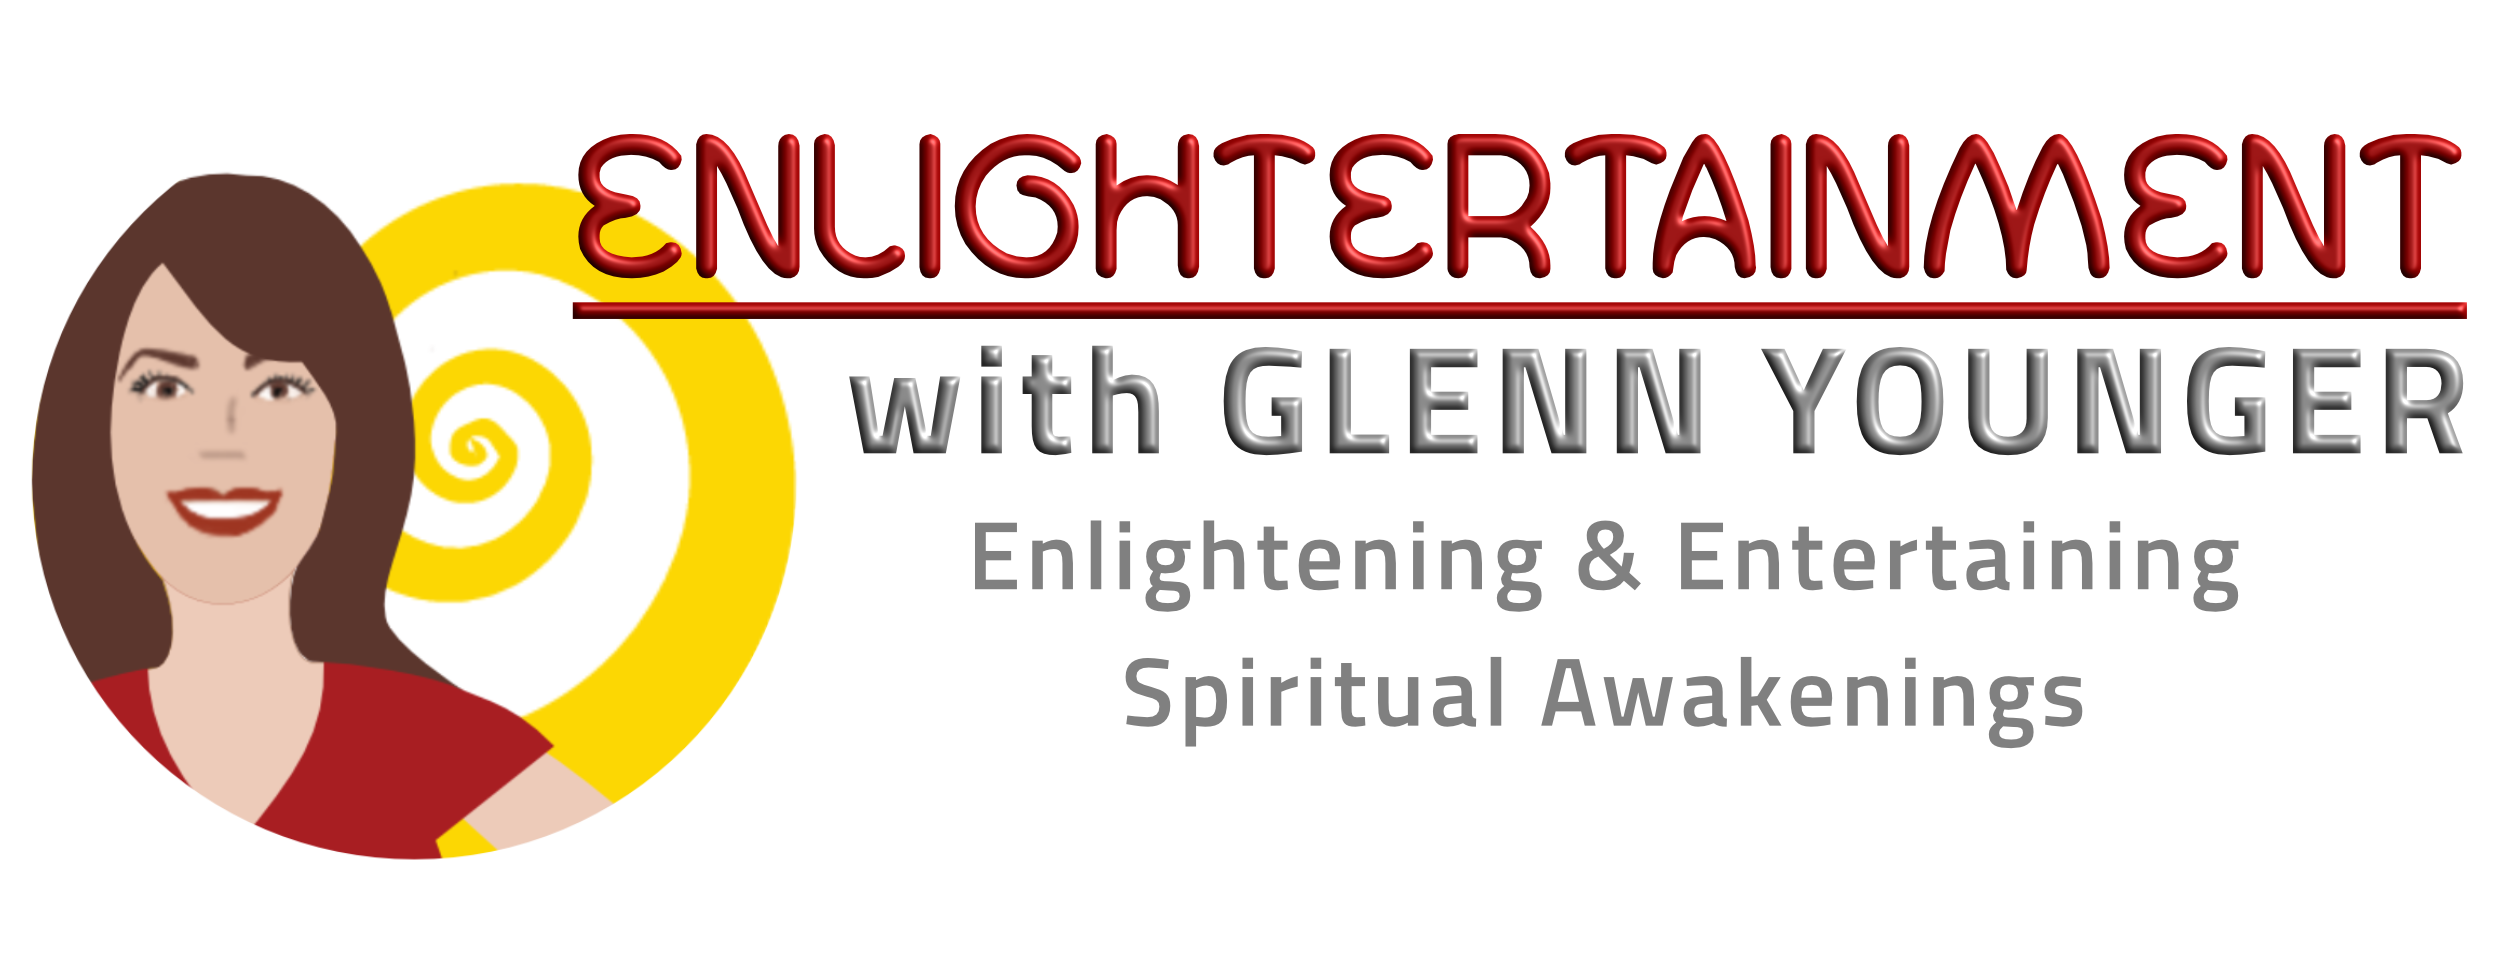 Enlightening & Entertaining Spiritual Awakenings for Self-Explorers, Spiritual Alchemists & New Thought Leaders.